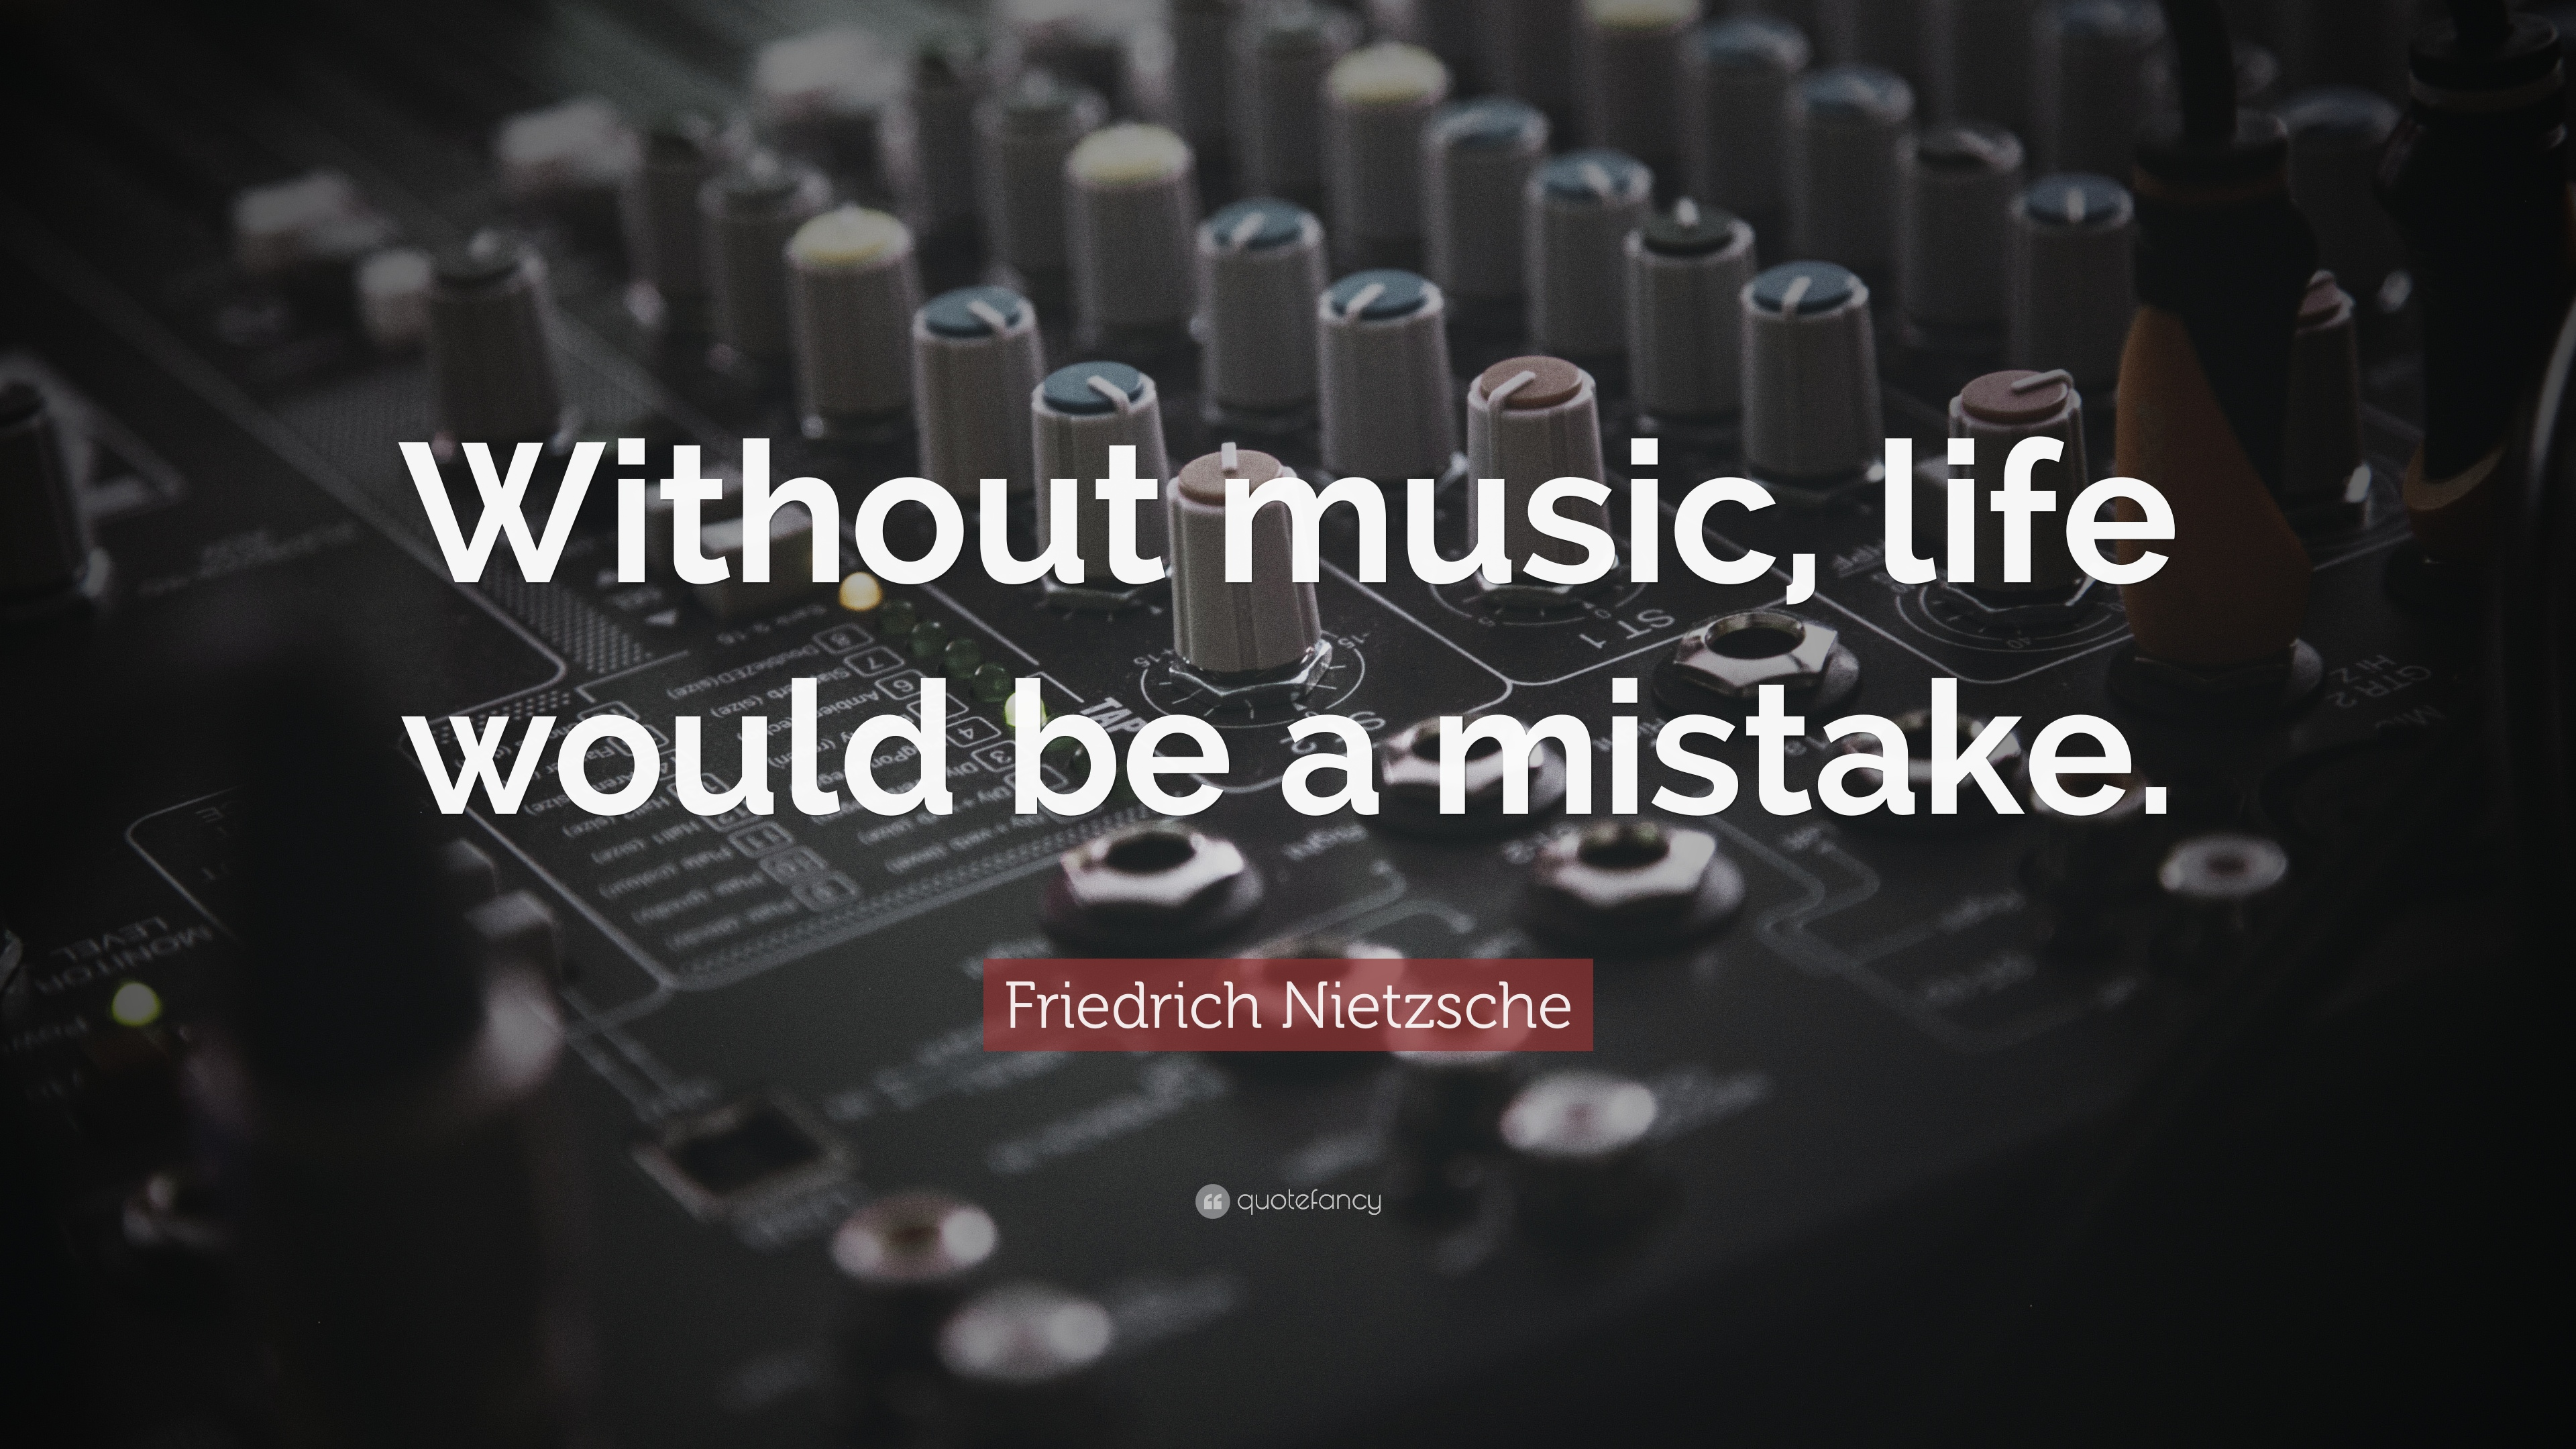 Audio Quotes About Life Music Quotes 50 Wallpapers  Quotefancy